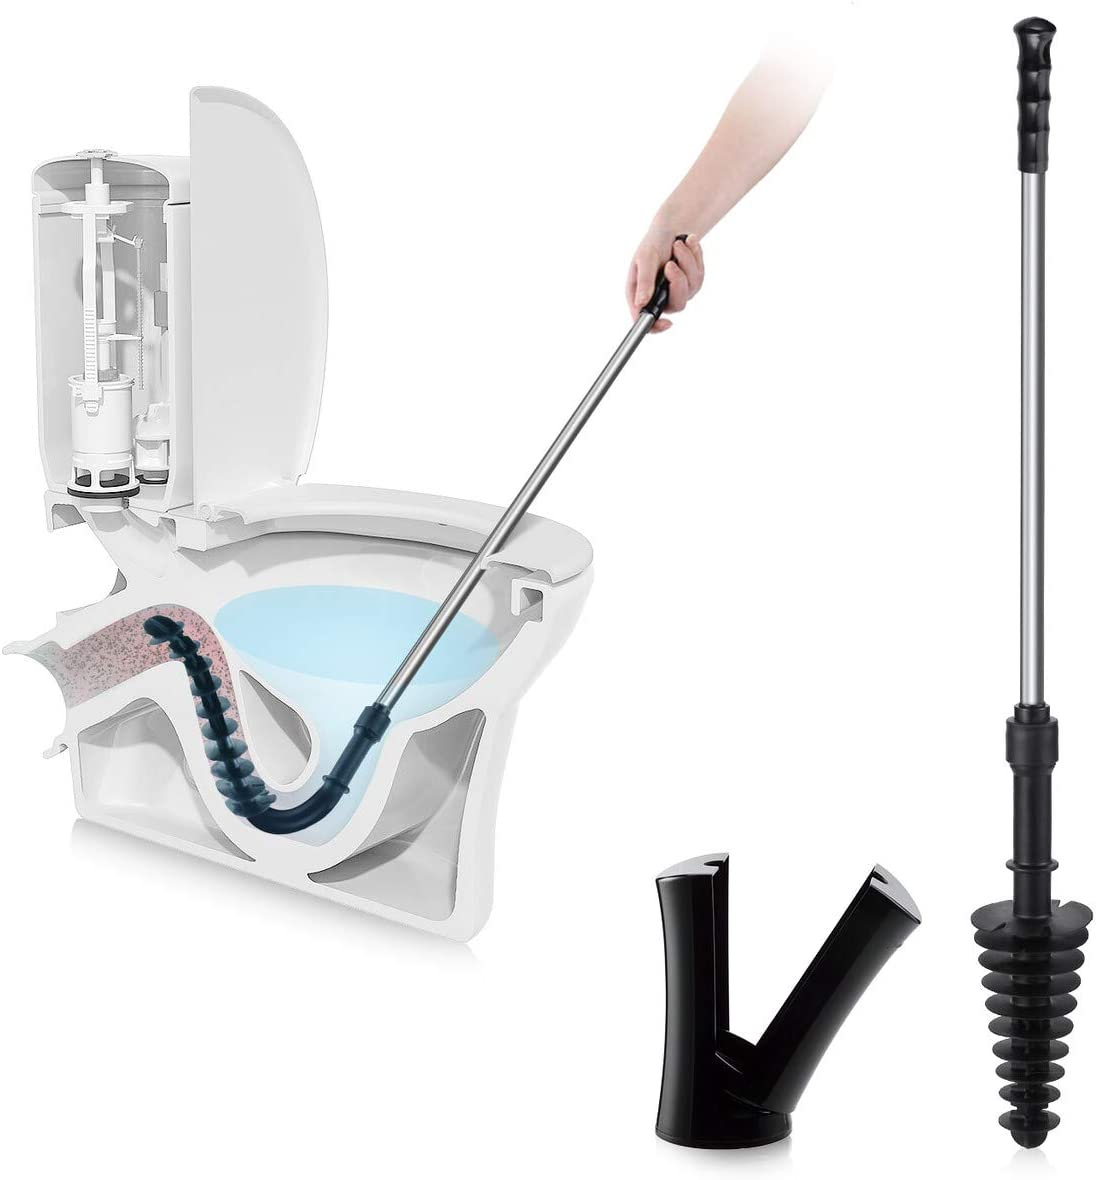 LEPO Toilet Plunger with Holder Clog Remover Squeegee Bathroom Toilet Dredge Tool Stainless Steel Handle Black